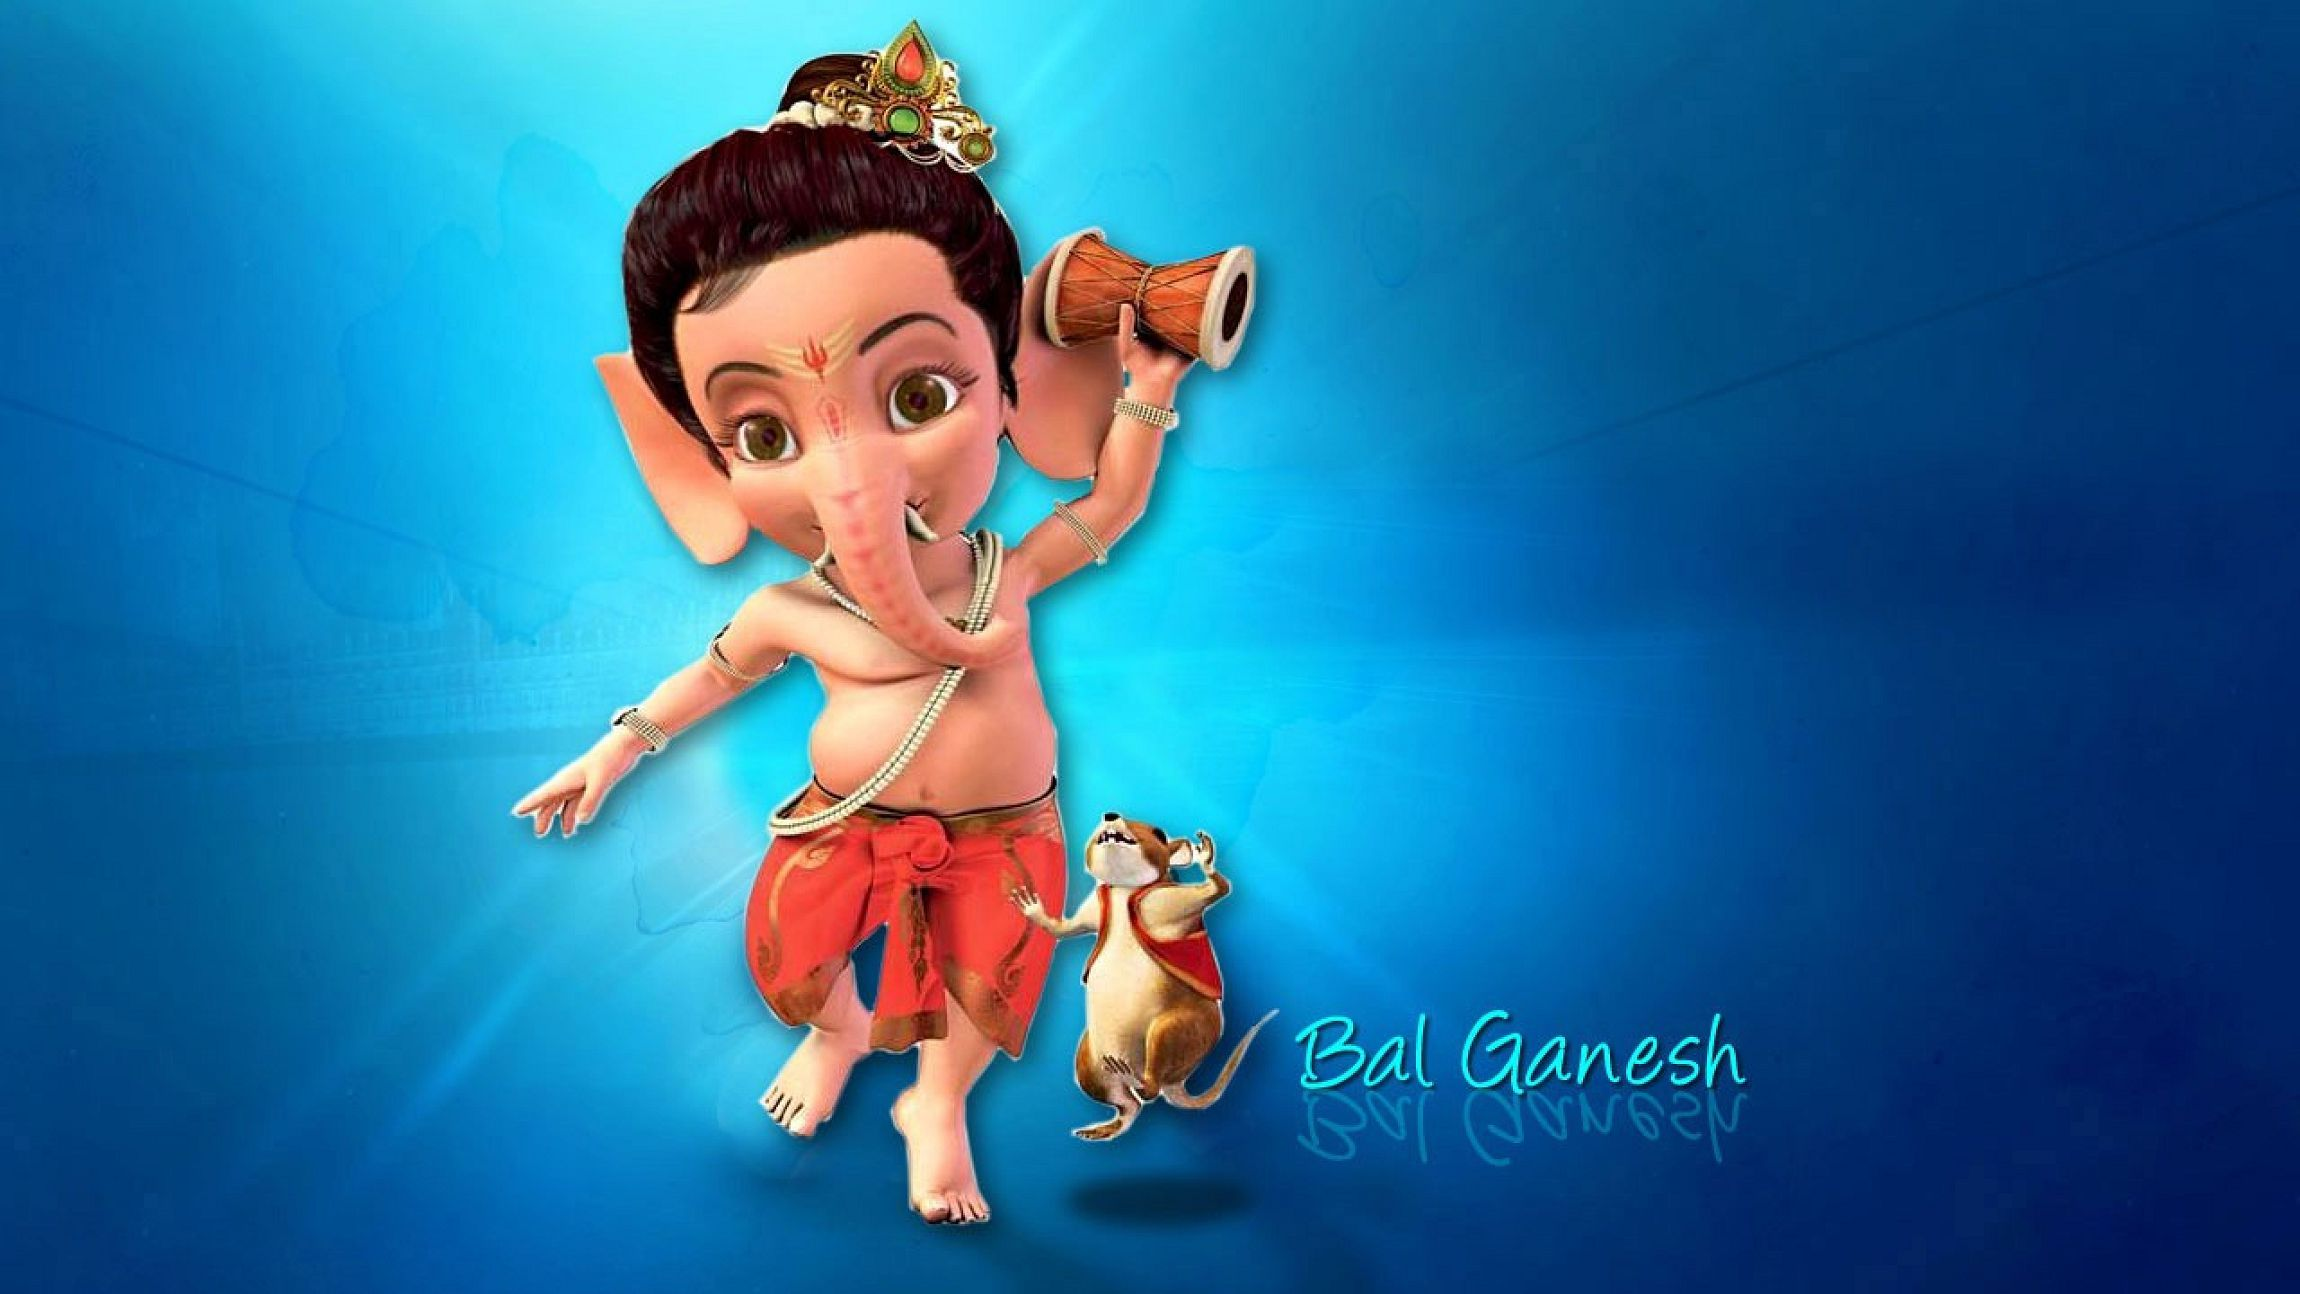 Bal Ganesh In High Resolution